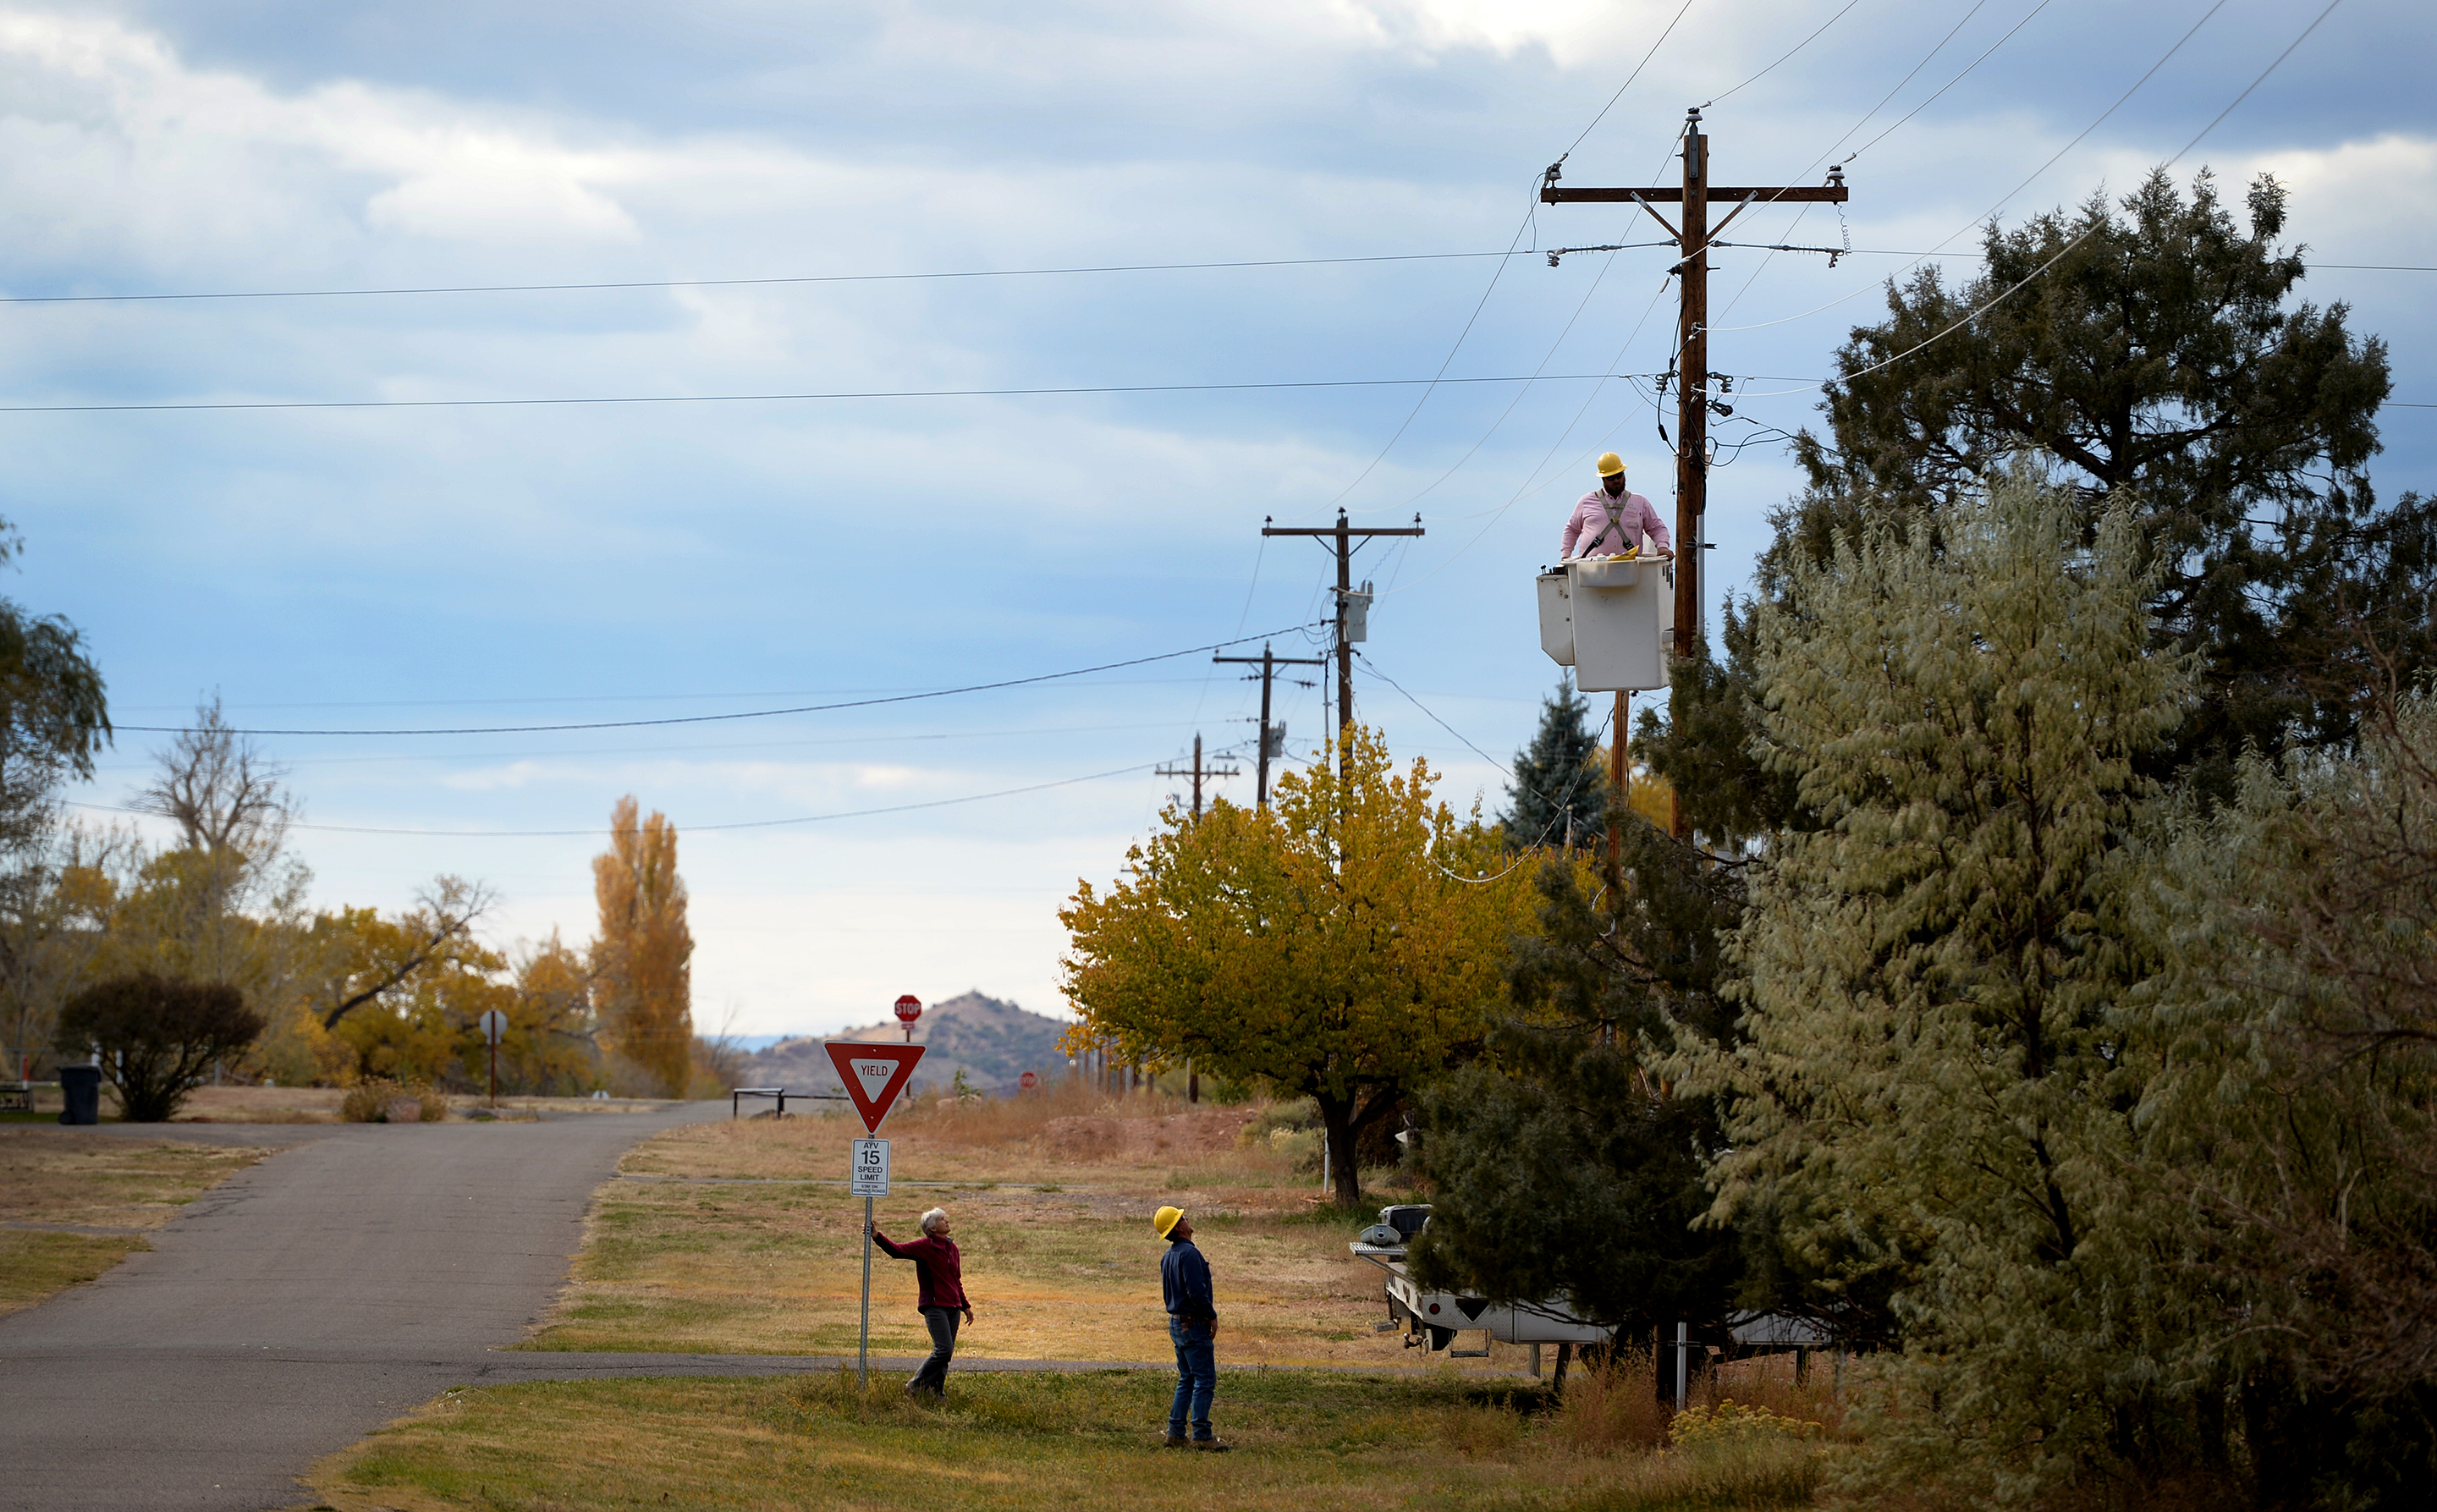 (Leah Hogsten  |  The Salt Lake Tribune) Torrey resident Mary Bedingfieldsmith, left, watches as workers from Garkane Energy Cooperative replace the remaining four sodium vapor lights on 100 North with new lights, using spectra at 3000 Kelvin or less, that direct light away from the sky, Oct. 19, 2017.  Torrey, the gateway town to Capitol Reef National Park, has applied to become the state's first Dark Sky Community.